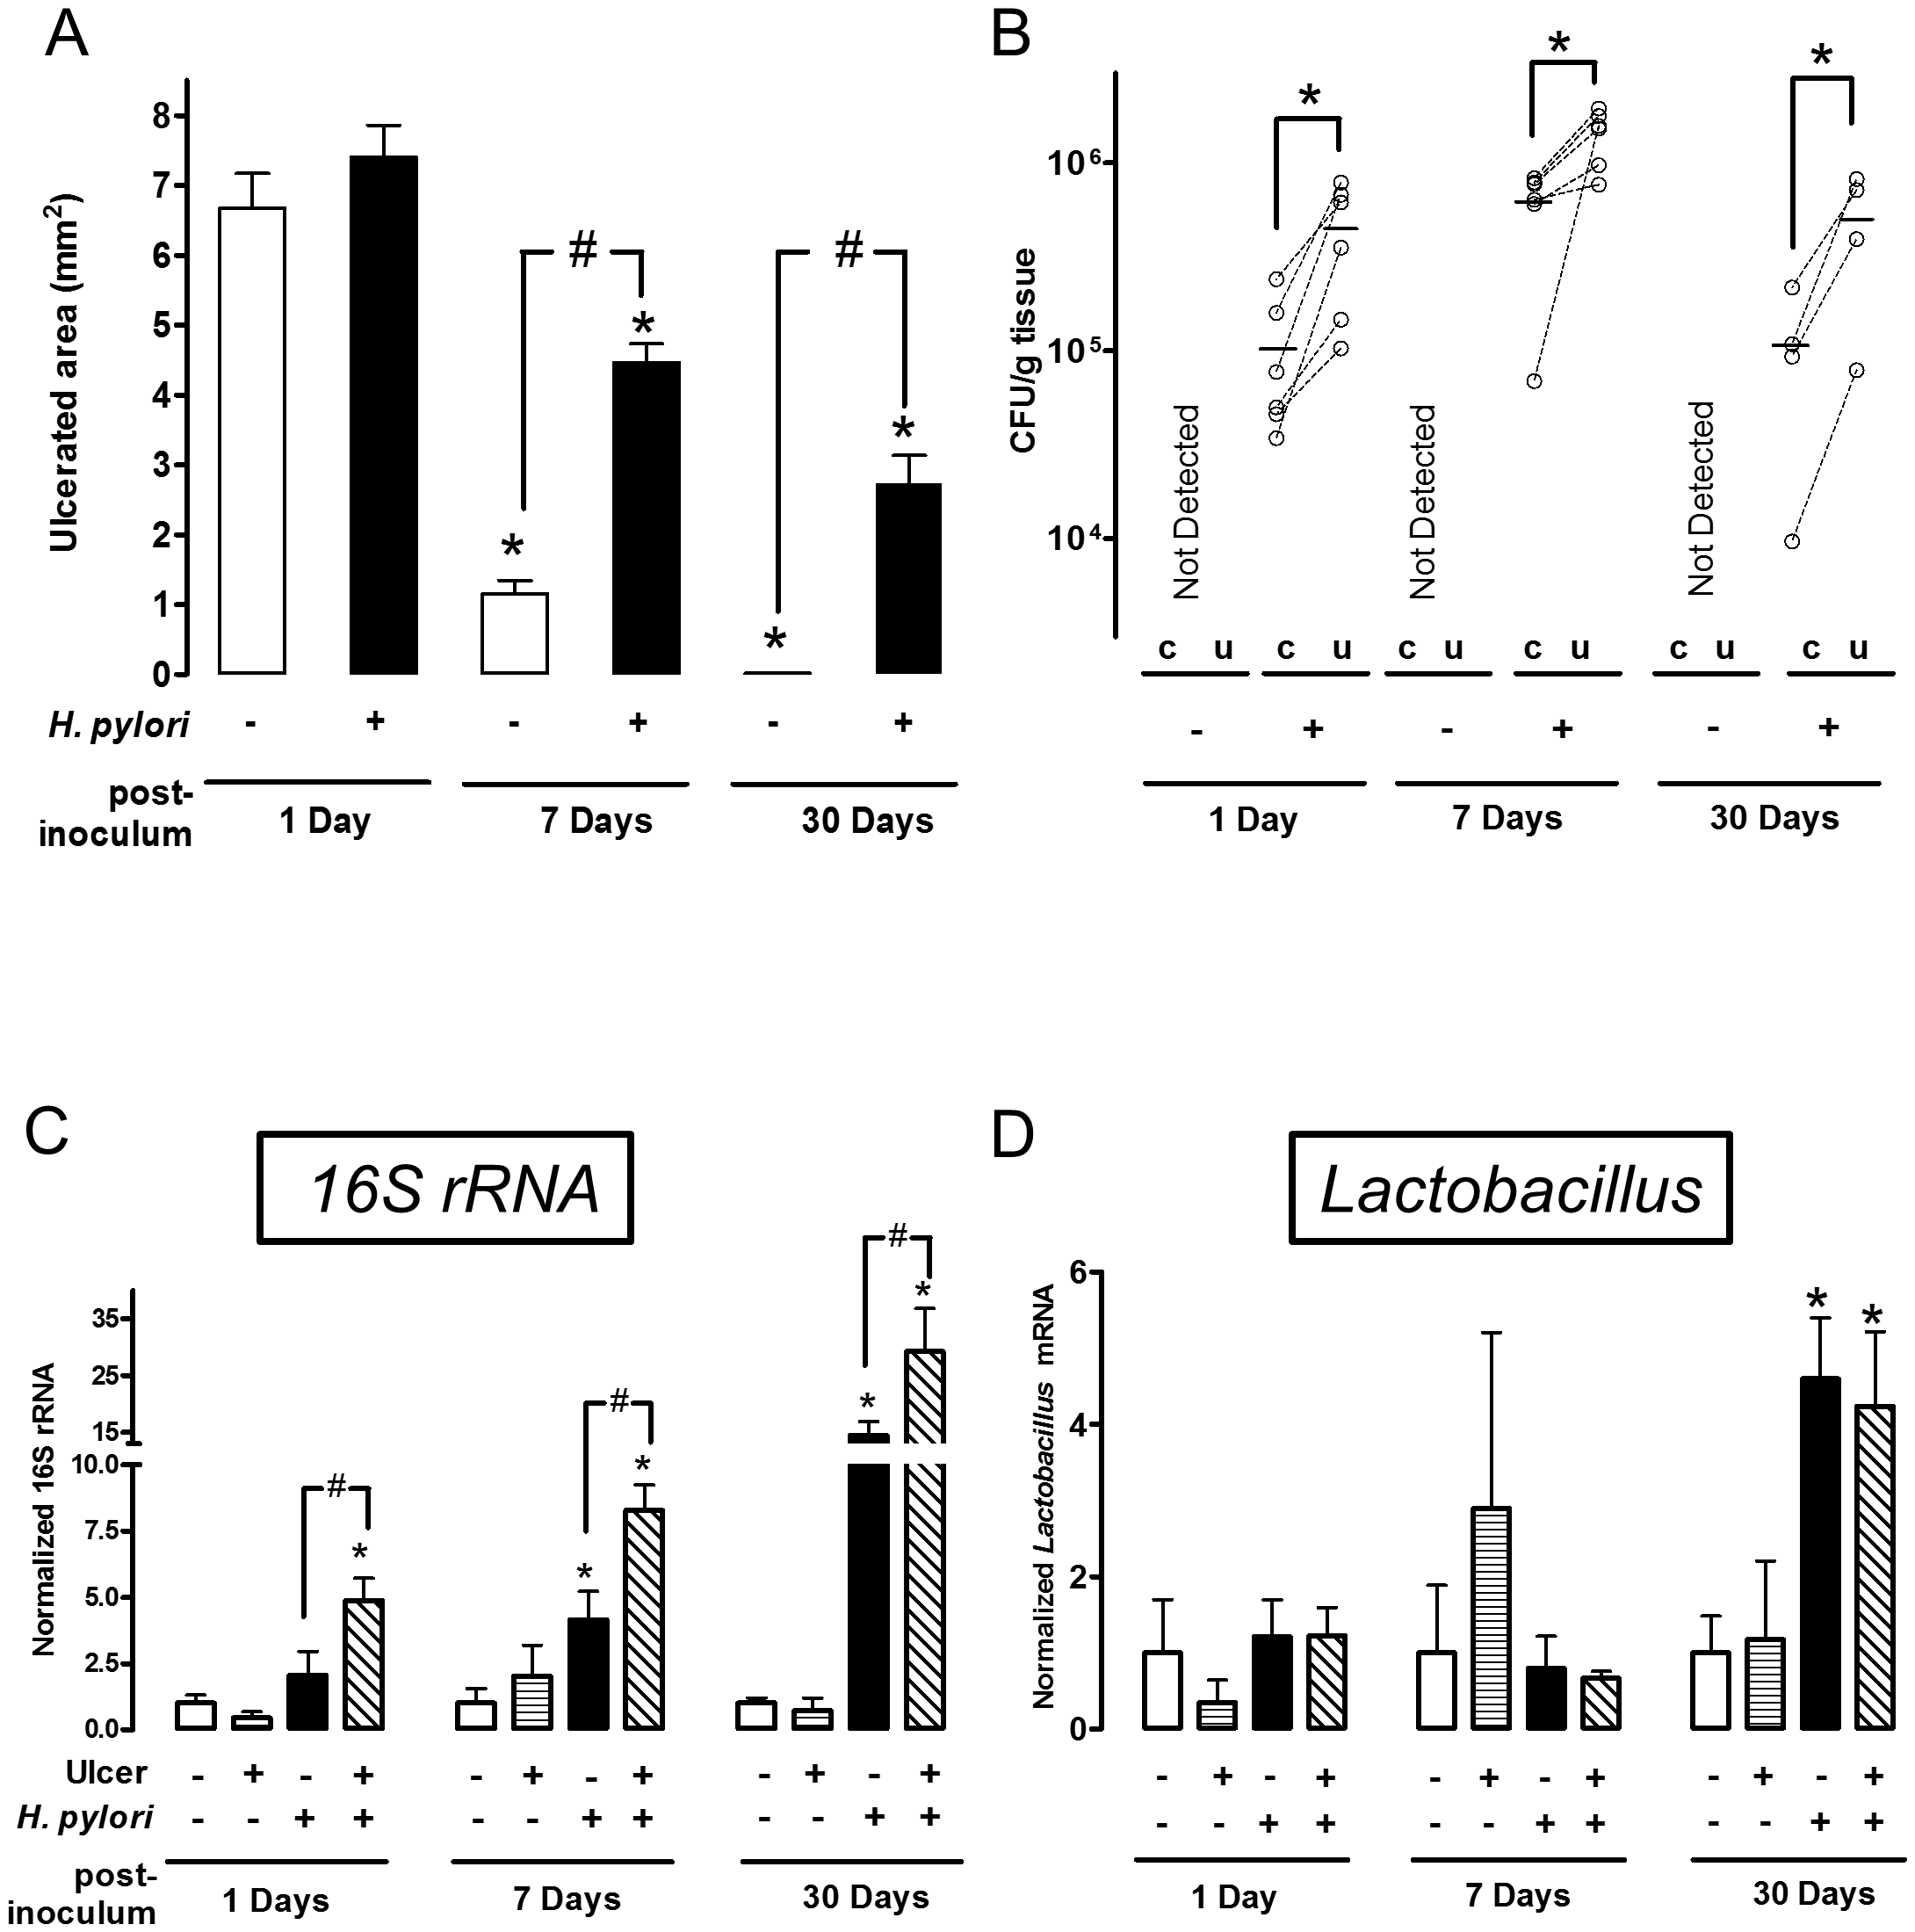 Time course of bacterial colonization and <i>H. pylori</i> effects on gastric ulcer healing.